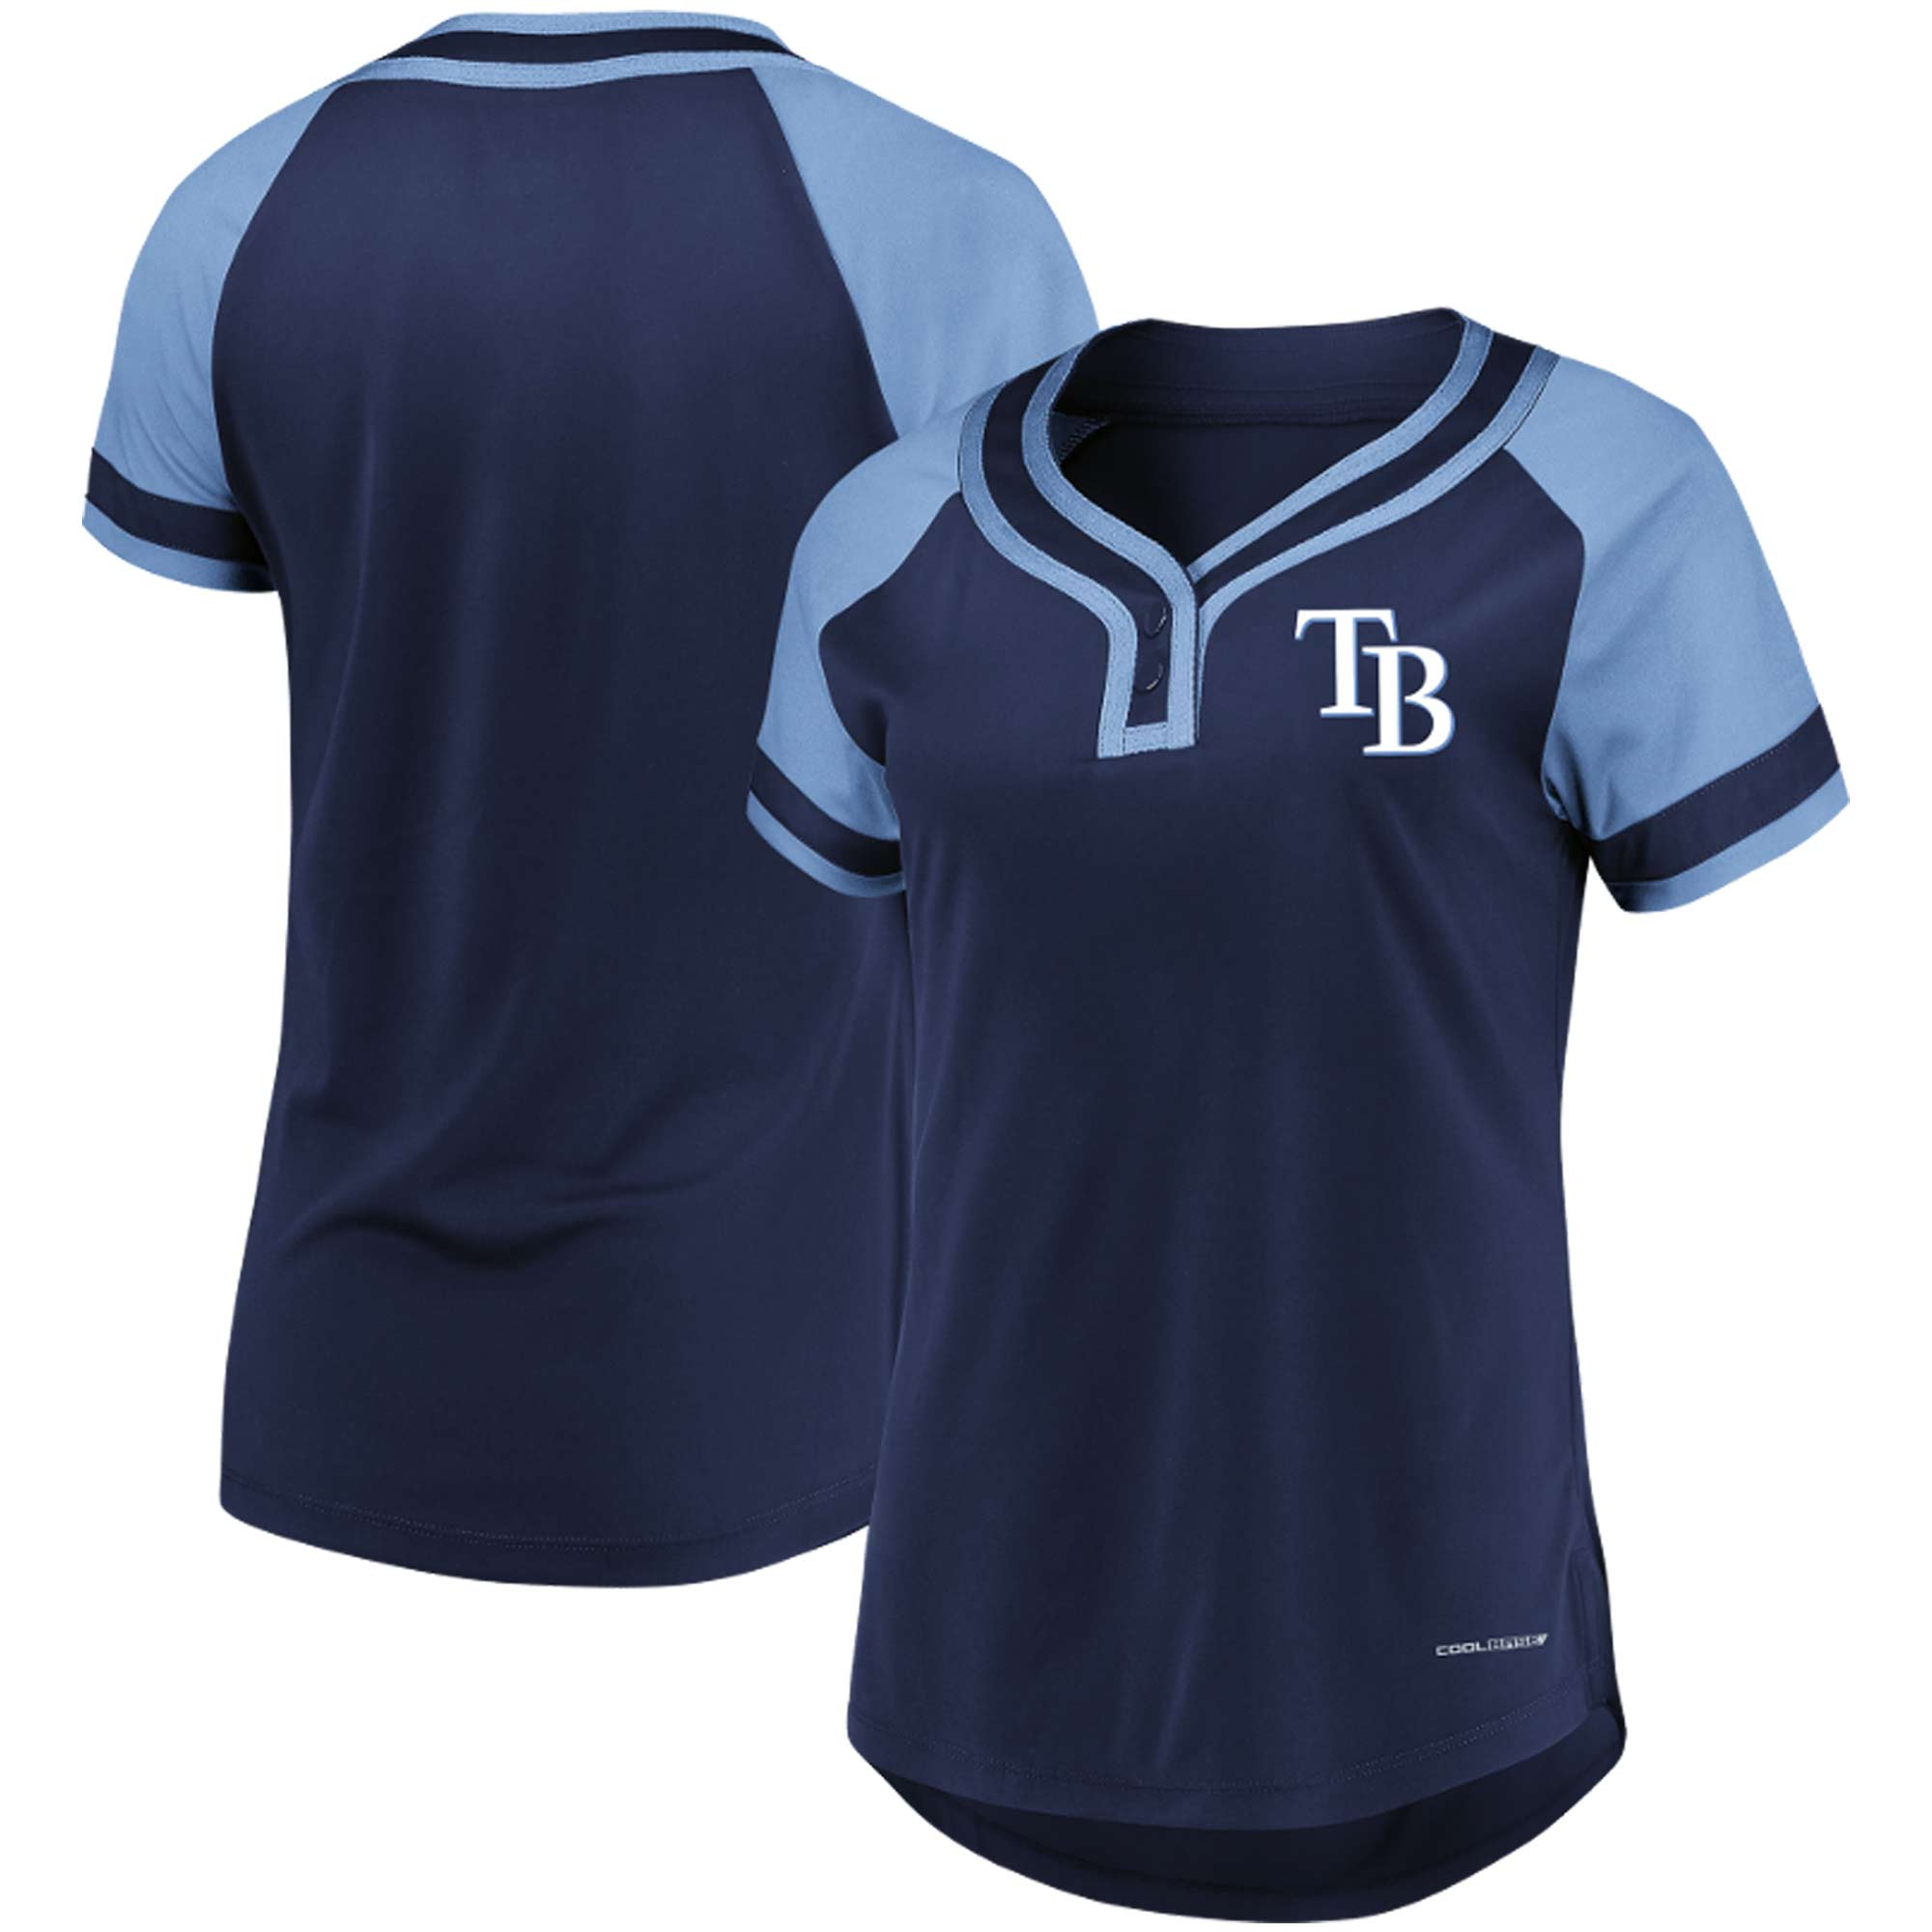 Tampa Bay Rays Majestic Women's League Diva Cool Base Henley Raglan T-Shirt - Navy